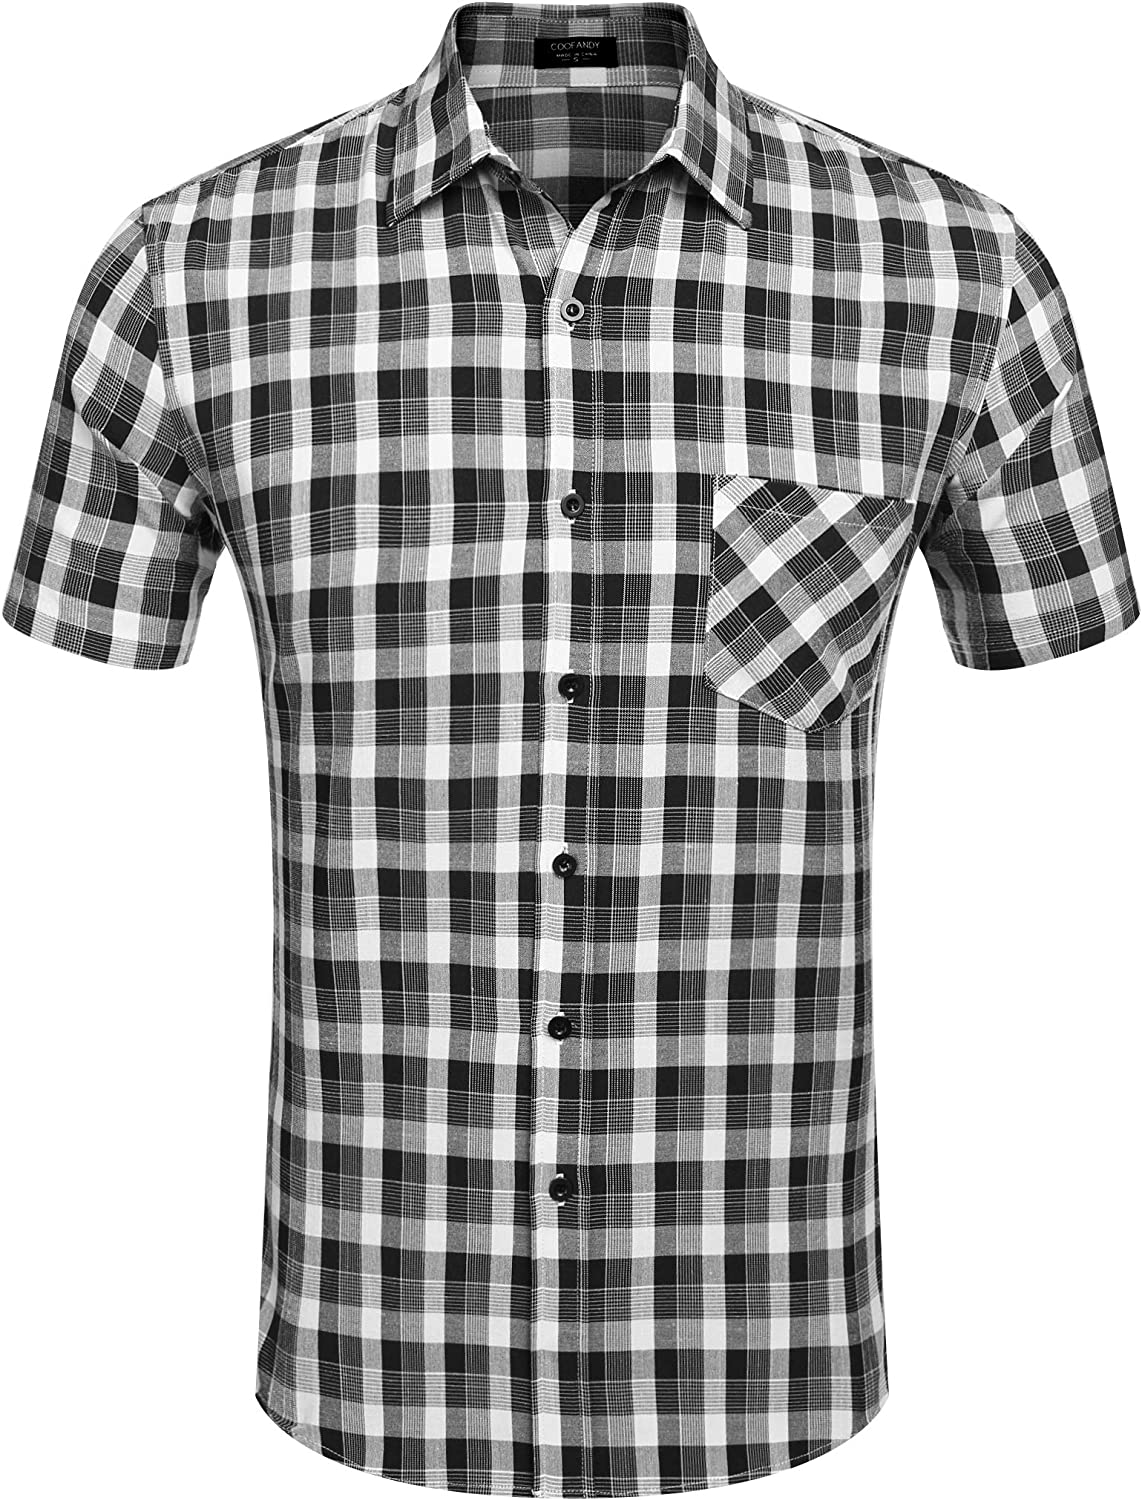 COOFANDY Men's Plaid Short Sleeve Shirts Casual Button-Down Cotton Classic Dress Checked Shirts with Pocket